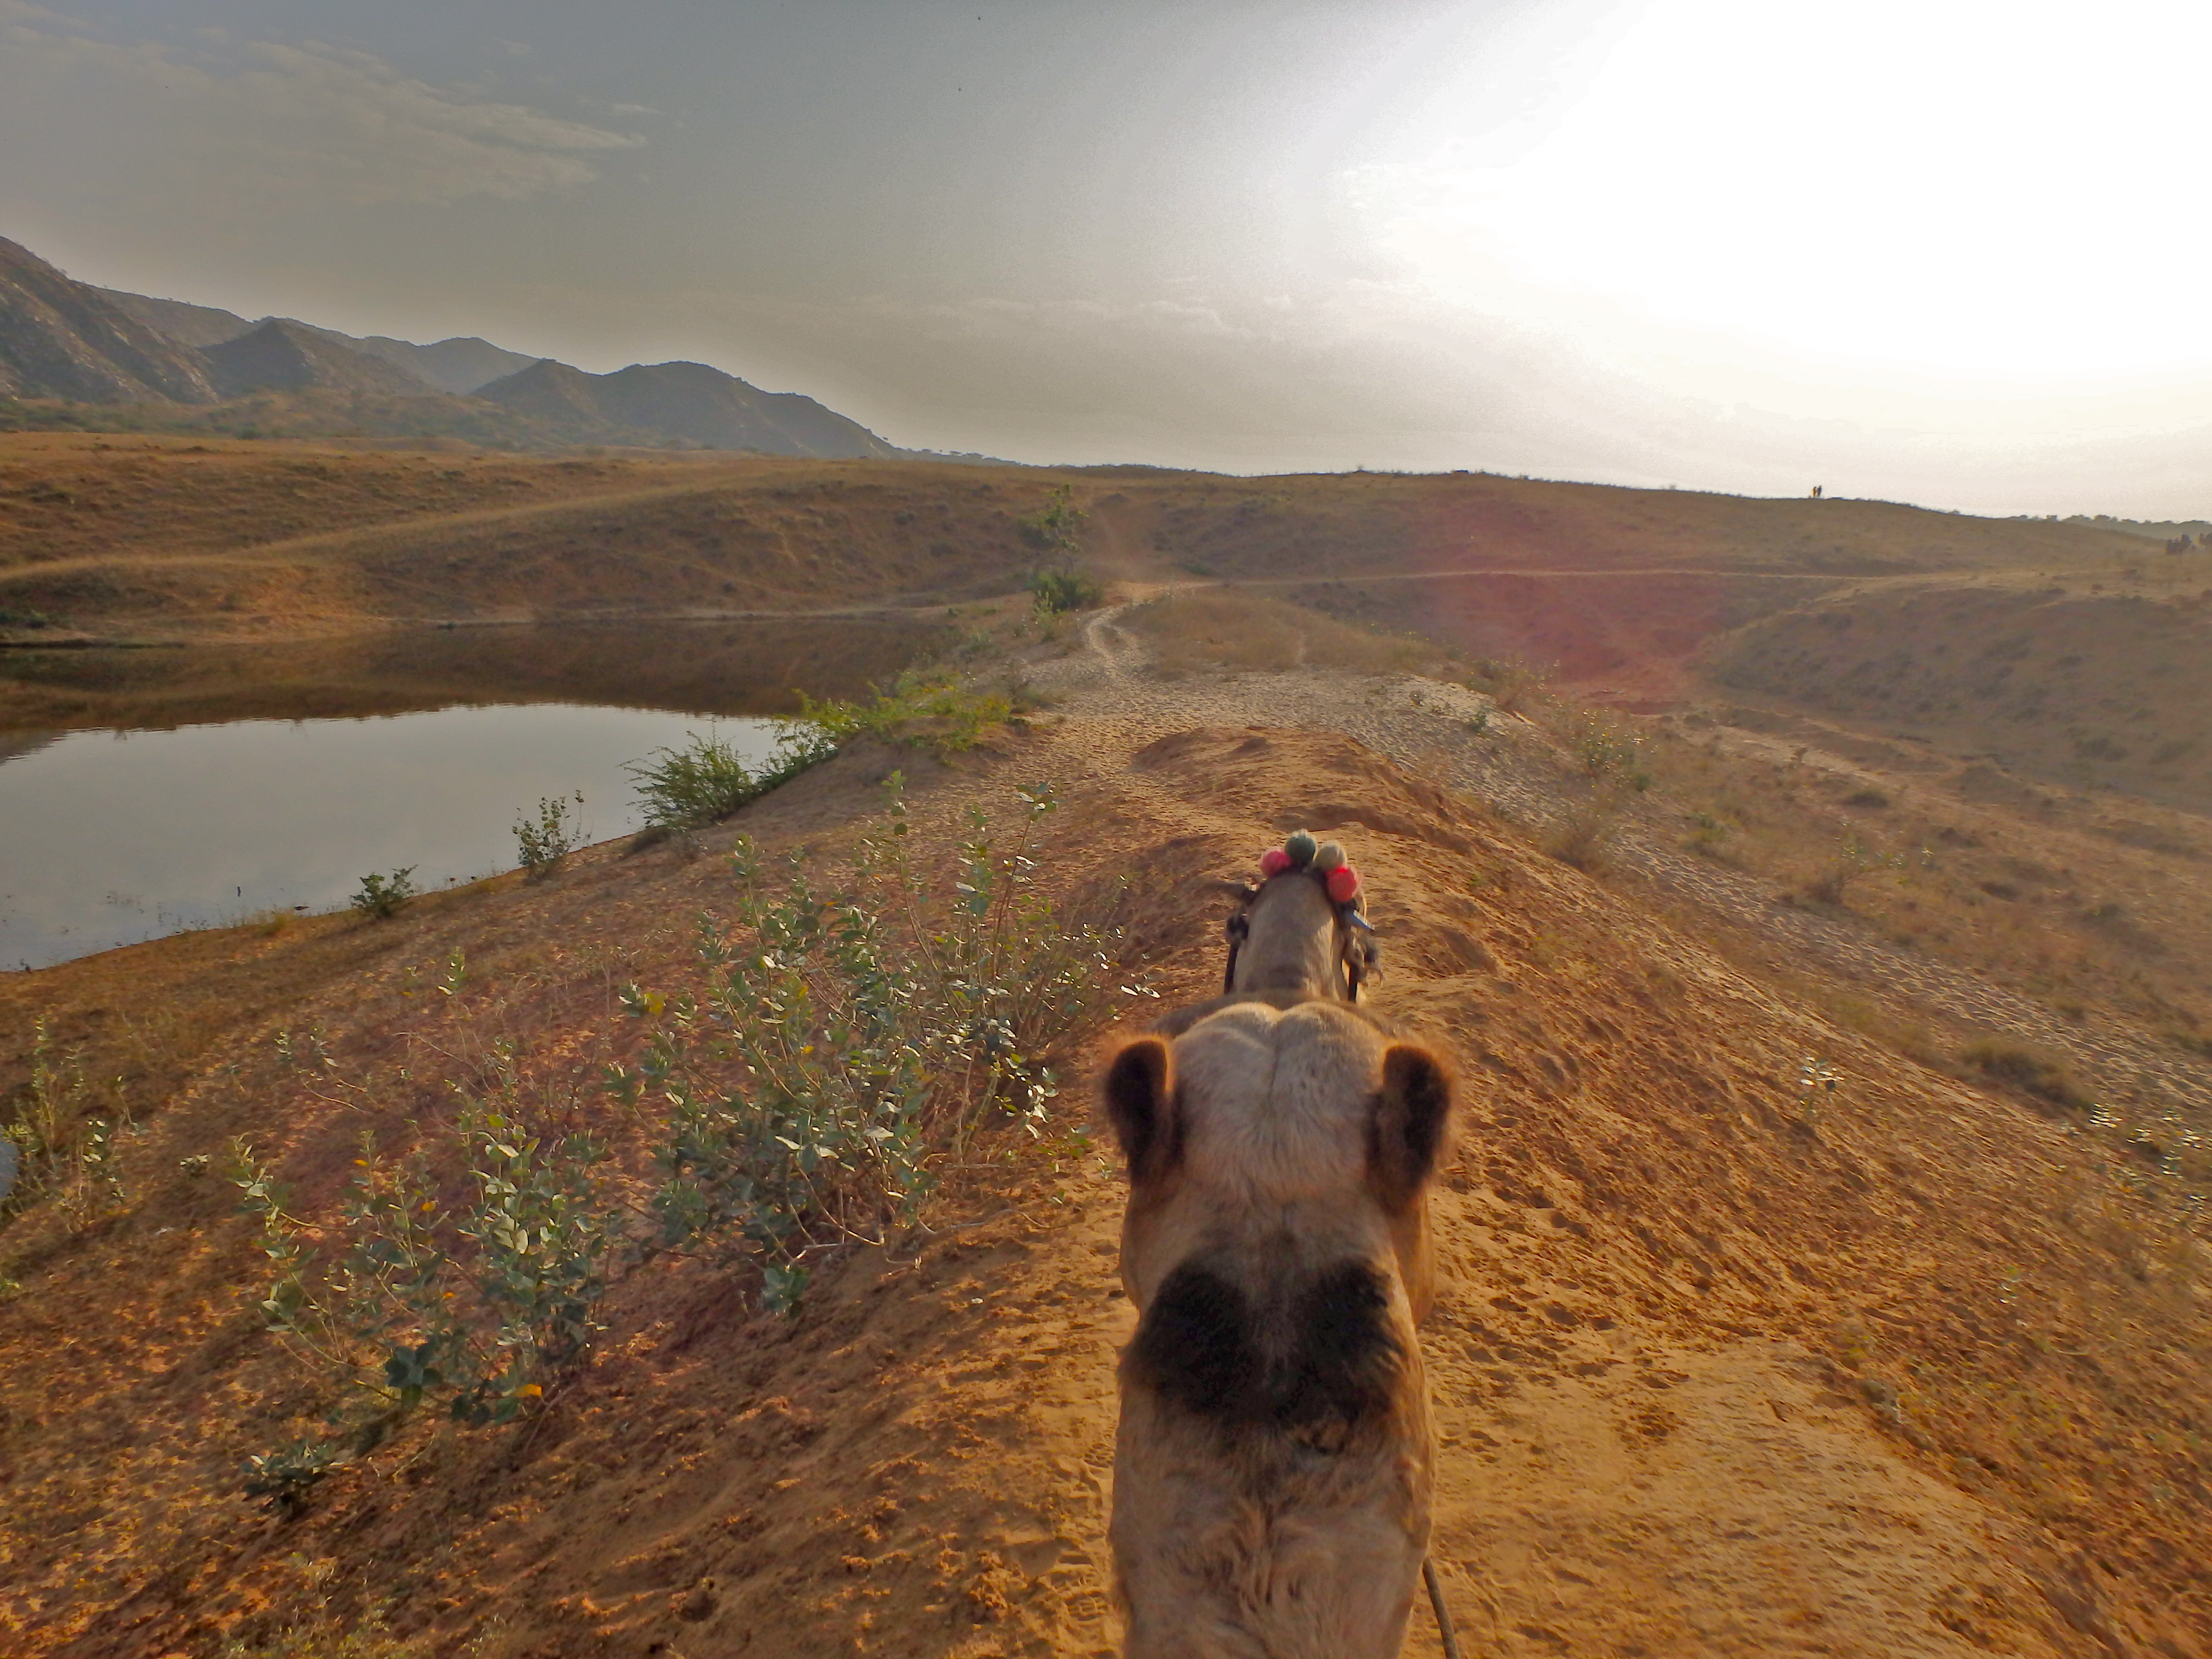 riding camels through the desert in india best experiences in india how to visit pushkar india